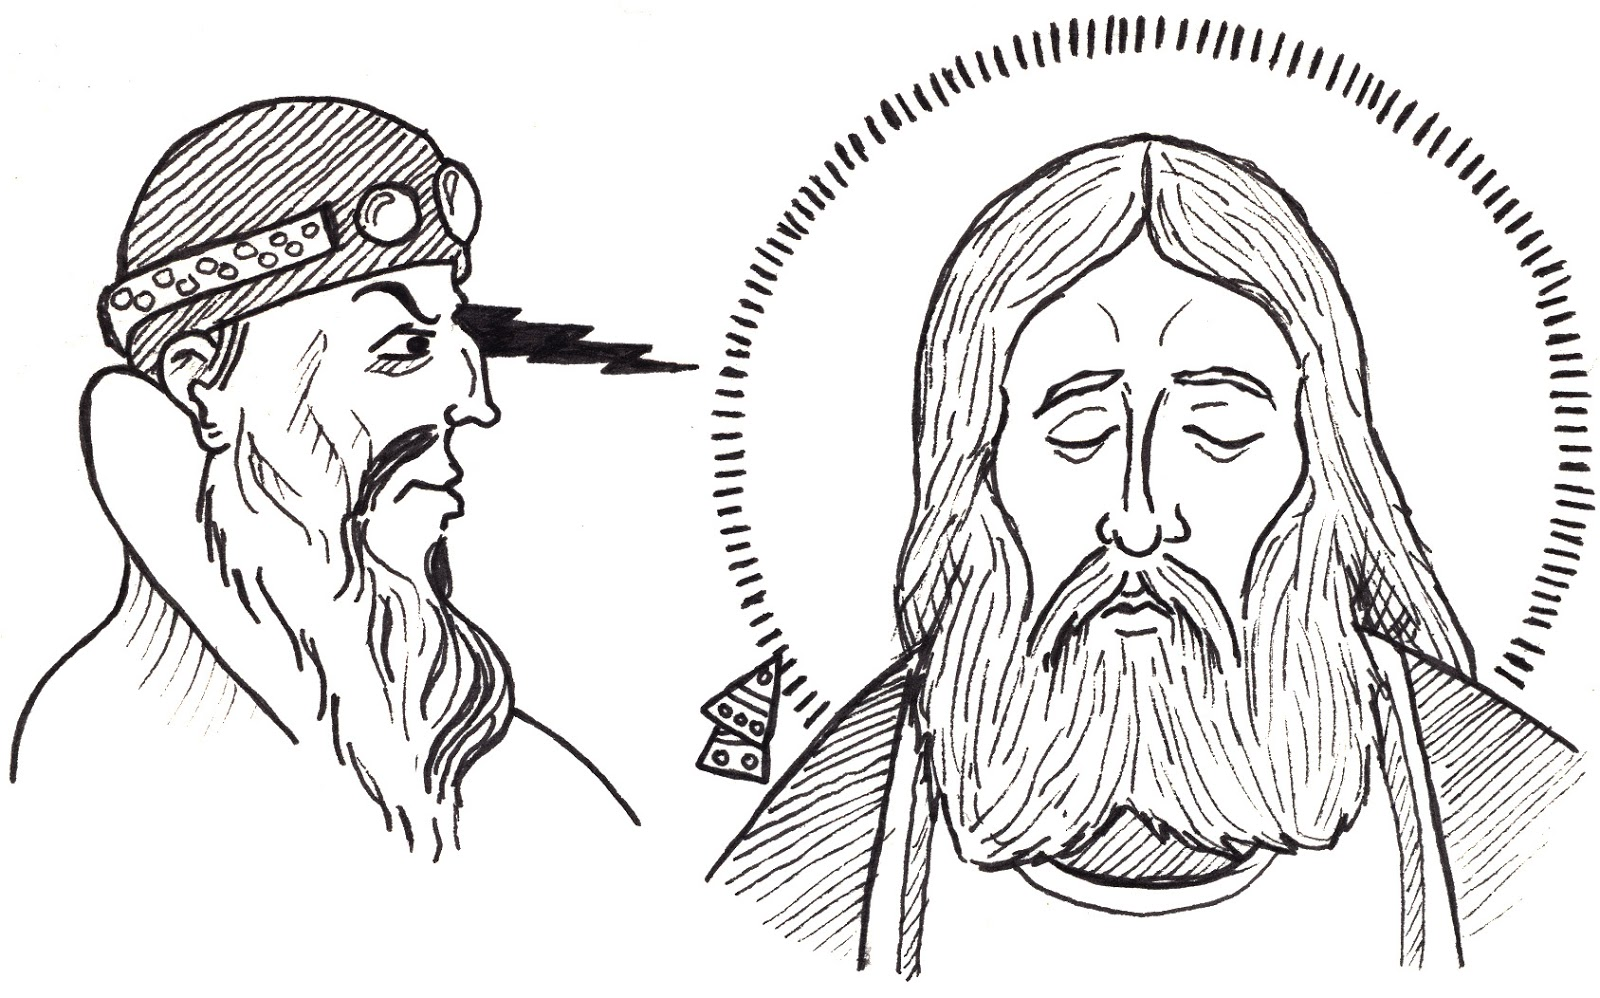 Bible Illustrated: Proverbs 11:12